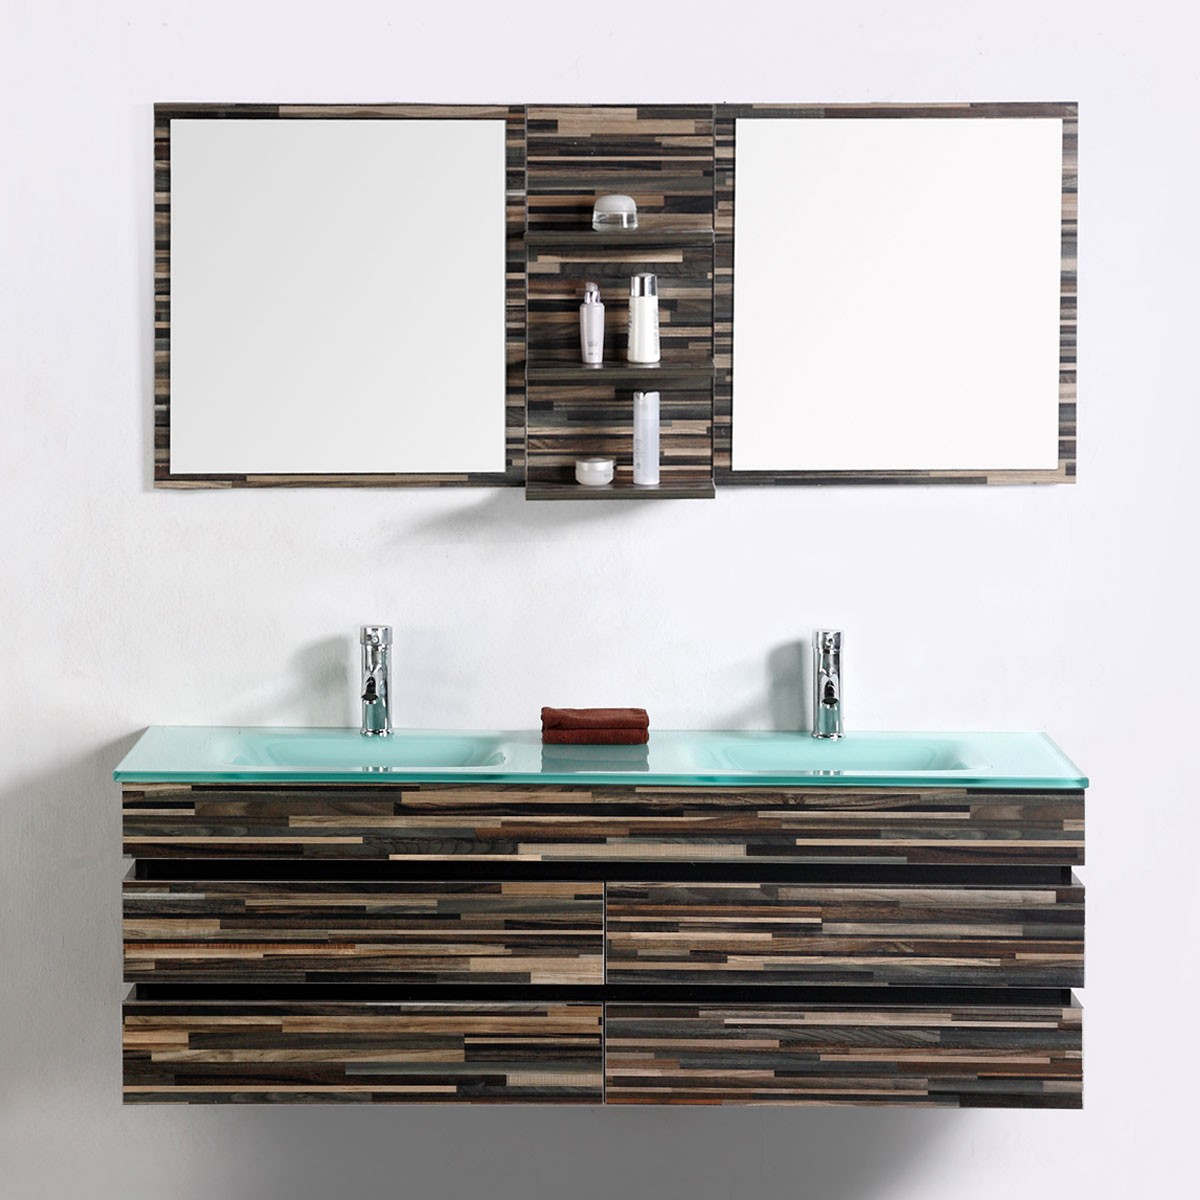 55 In Wall Mount Bathroom Vanity Set With Double Glass Sink And Mirror VS